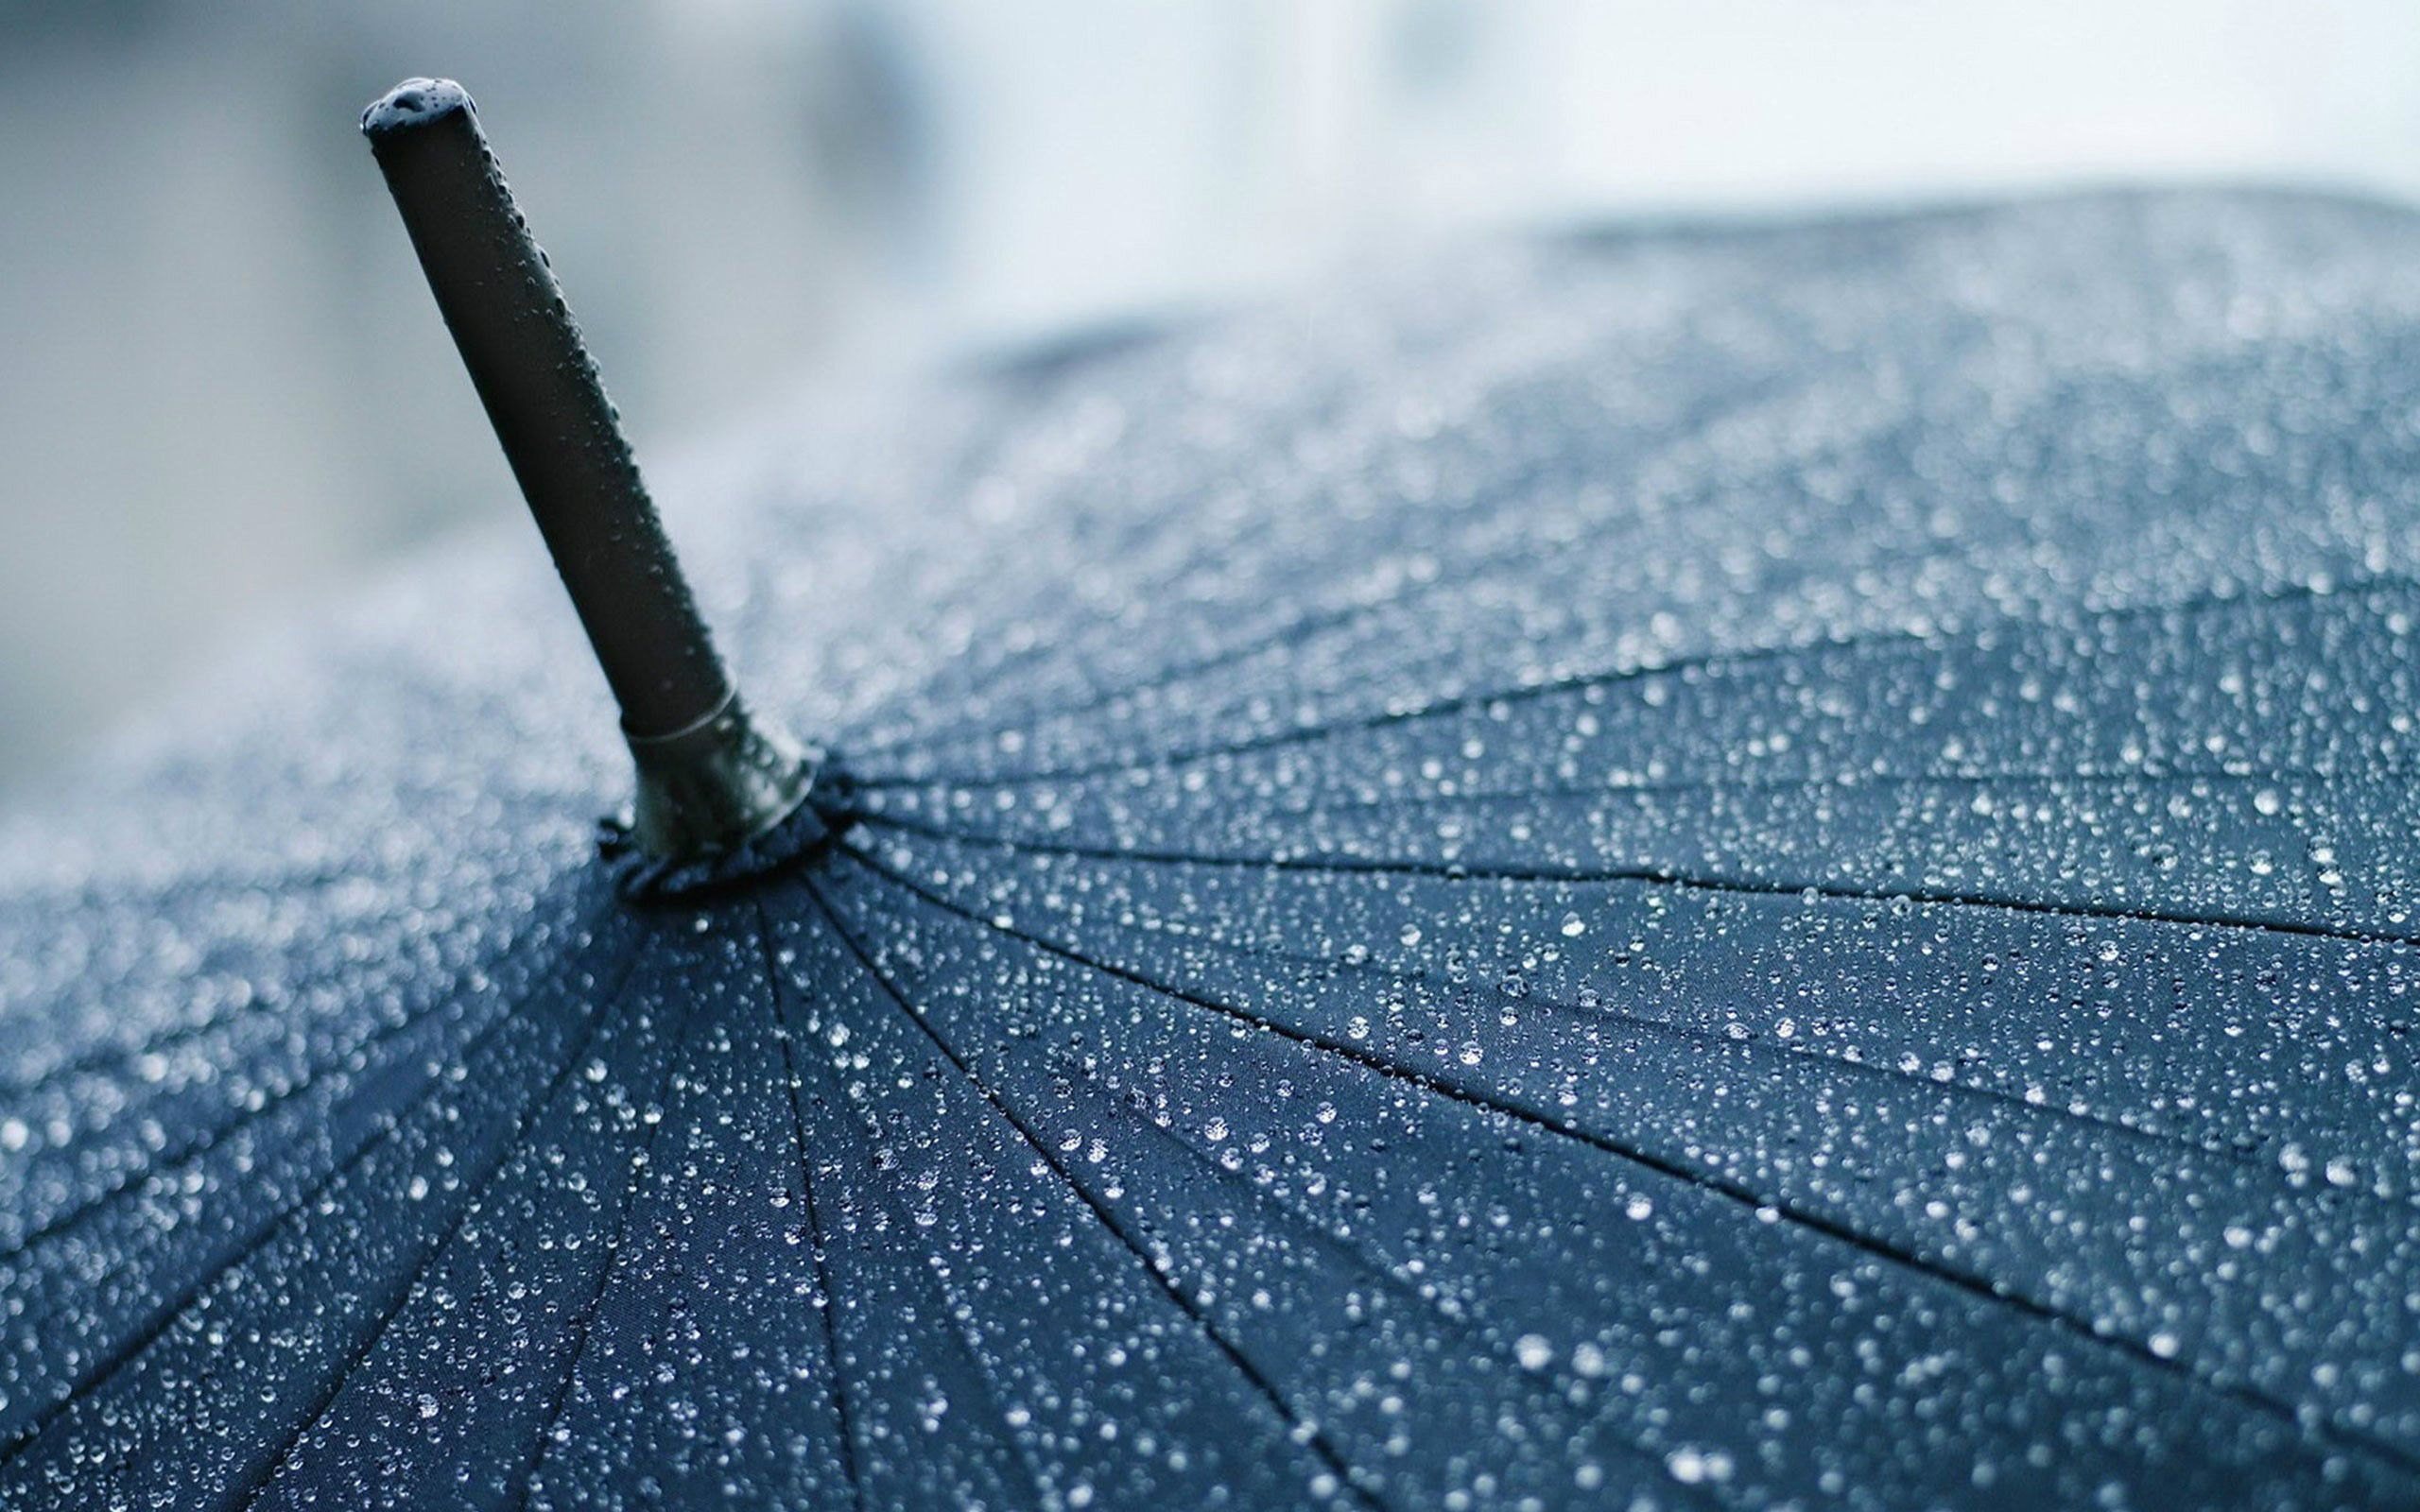 Photography Hd Wallpapers Hd Widescreen Wallpapers High Rain Wallpapers Rain Photography Amazing Photography Wallpaper